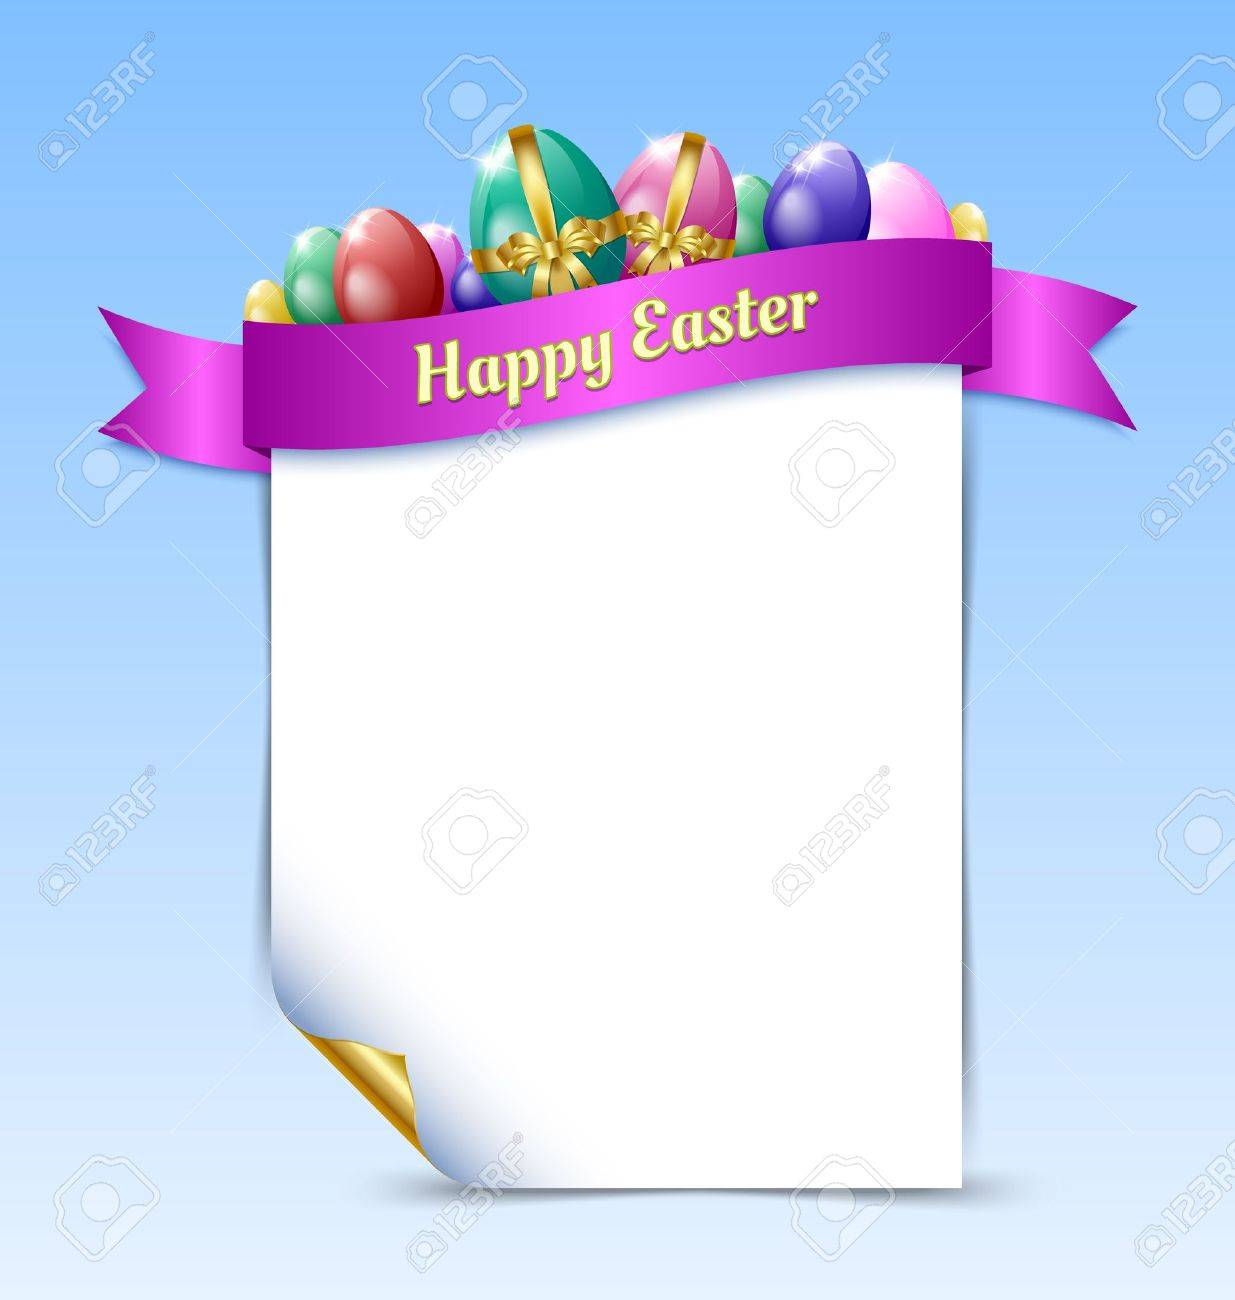 curly paper happy easter document template with easter eggs and